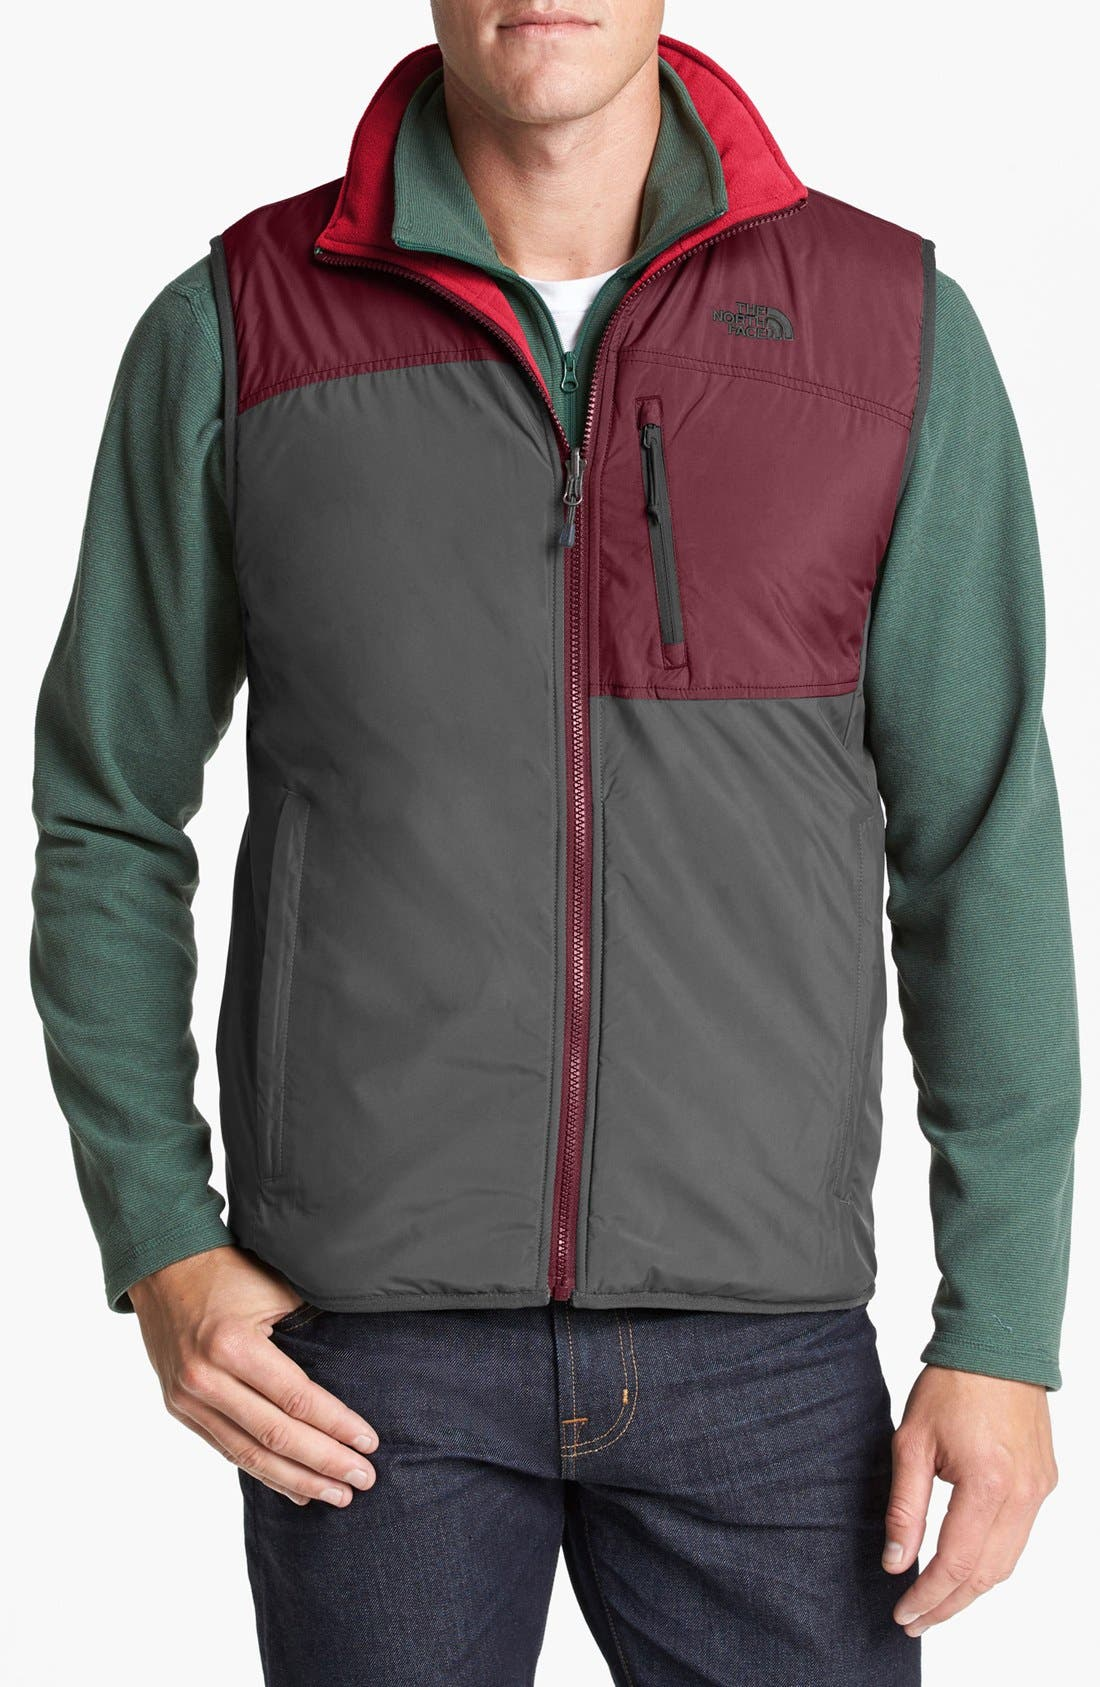 Alternate Image 1 Selected - The North Face 'TKA Trinity' Reversible Vest